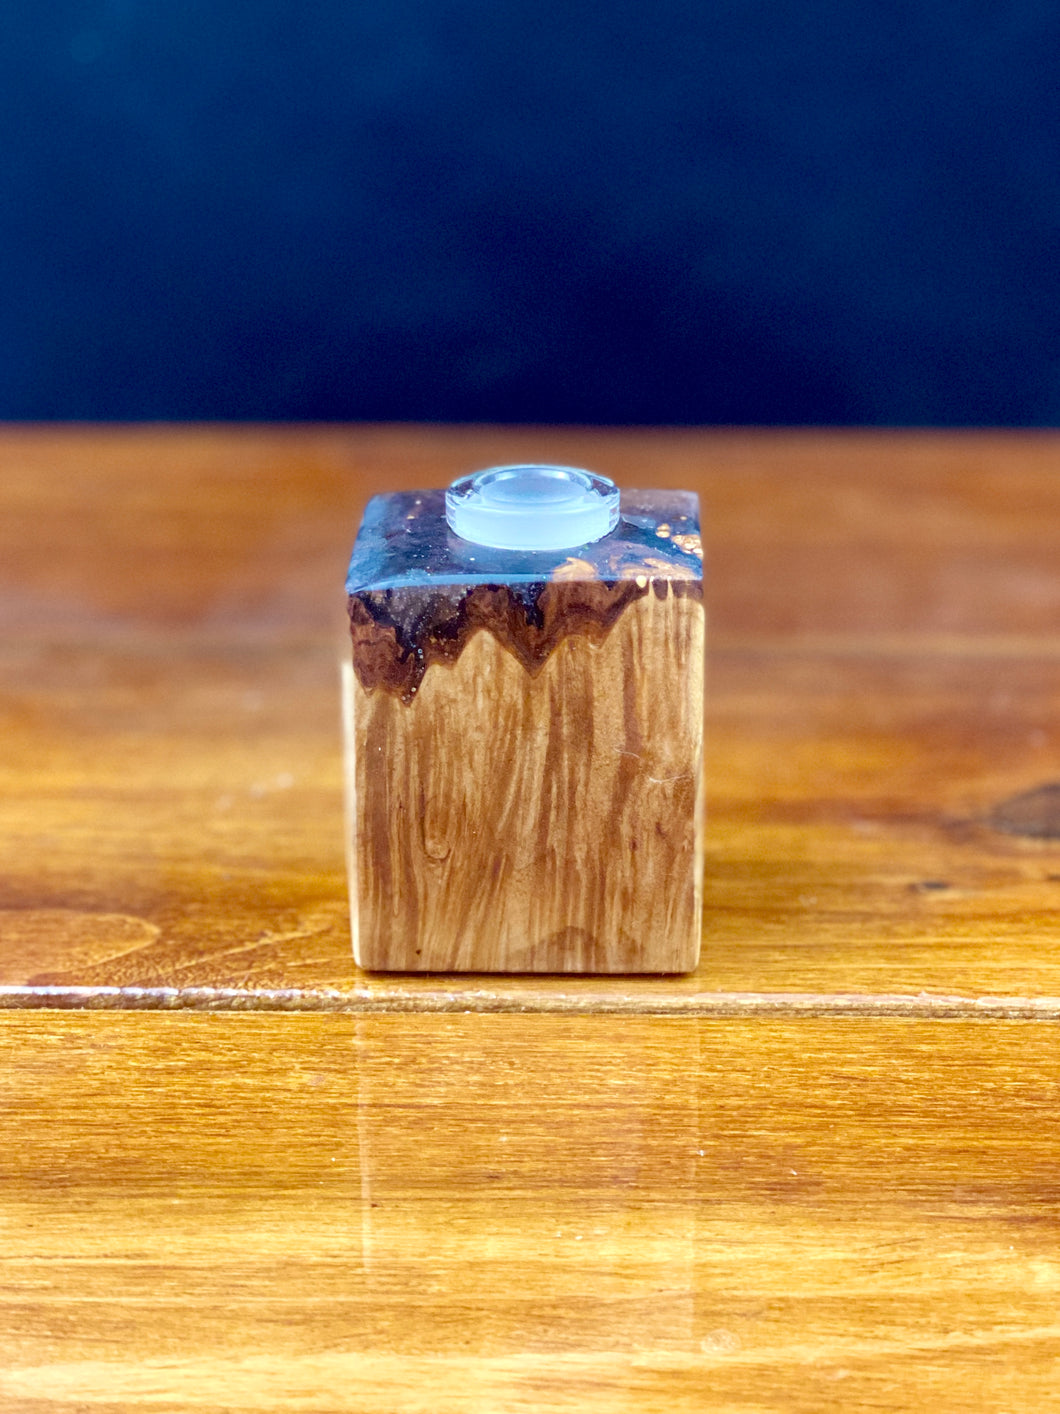 Lost Tree 1 Hole 14mm Epoxy Resin Slide/Bowl Holder